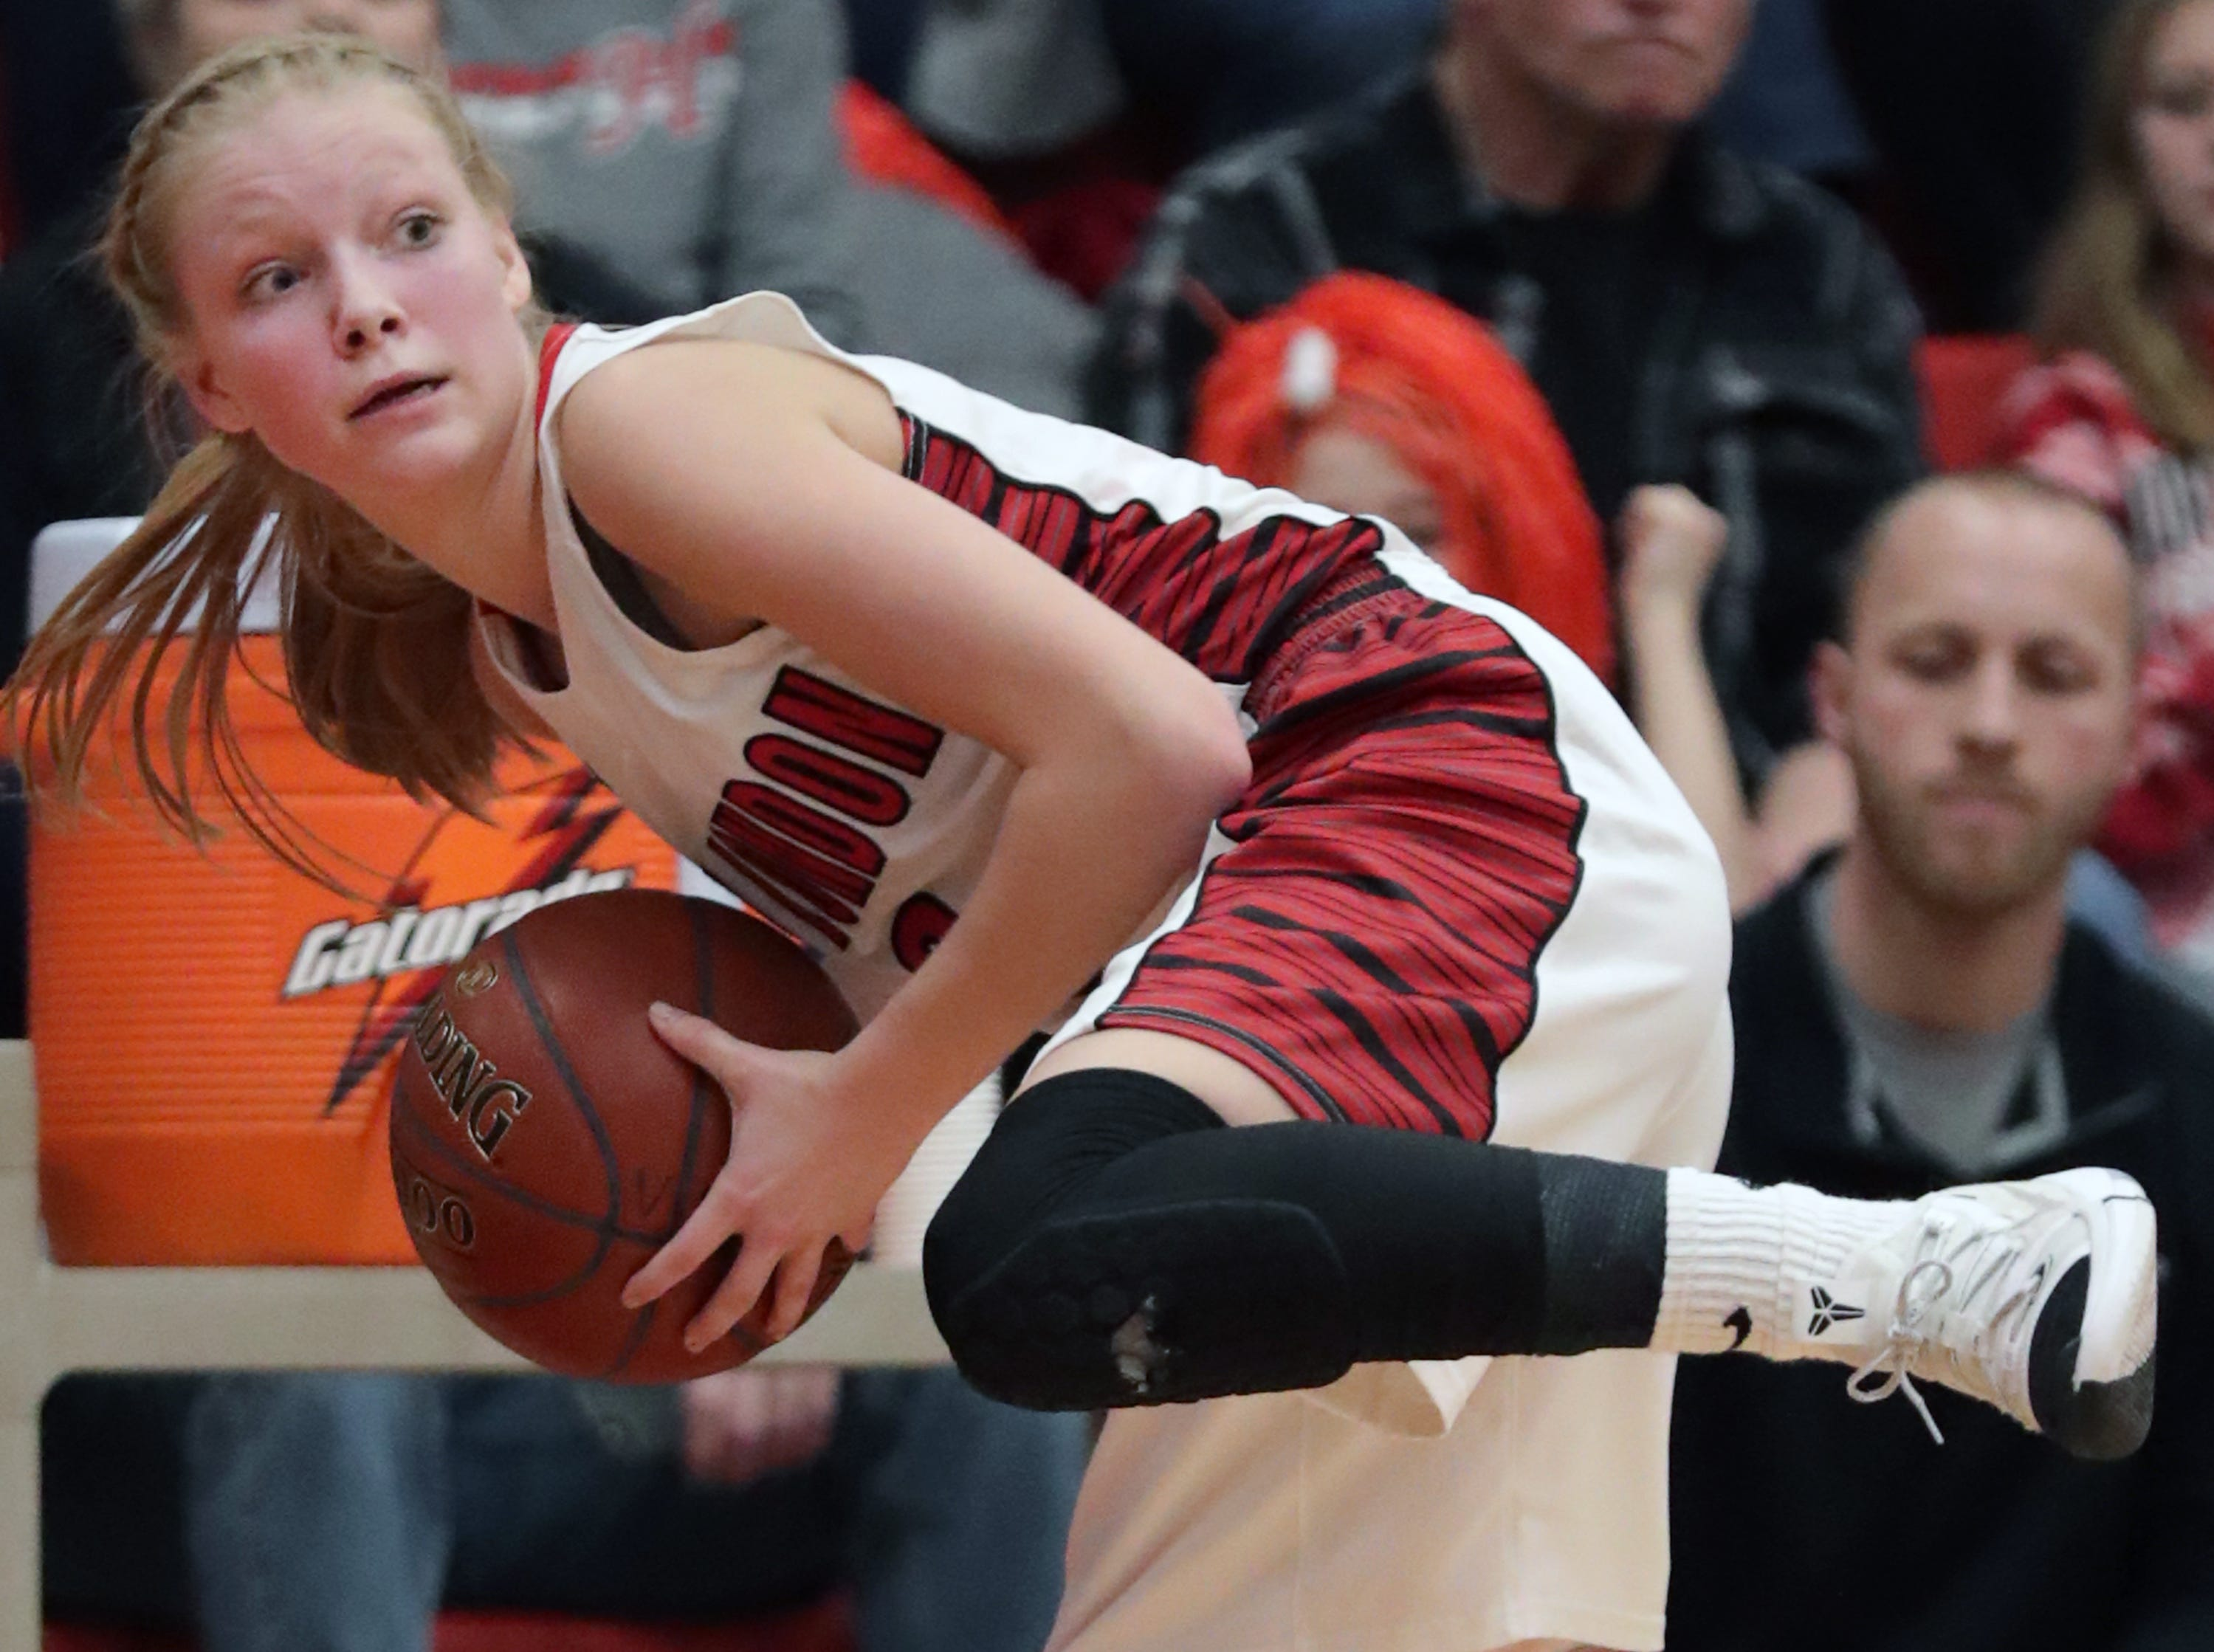 New London High School's #3 Kate Christian against Hortonville High School during their WIAA Division 2 girls basketball sectional semifinal gameThursday, February 28, 2019, at Kimberly High School in Kimberly, Wis. Hortonville defeated New London 67 to 42.